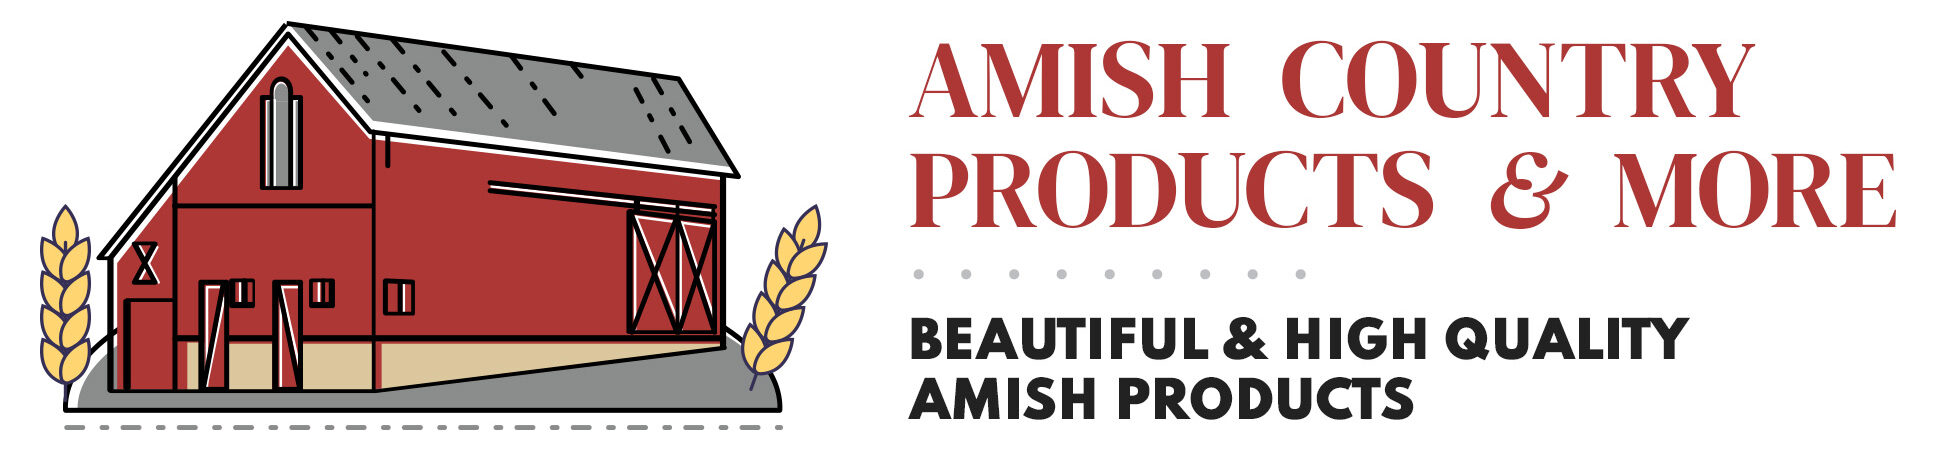 Amish Country Products & More